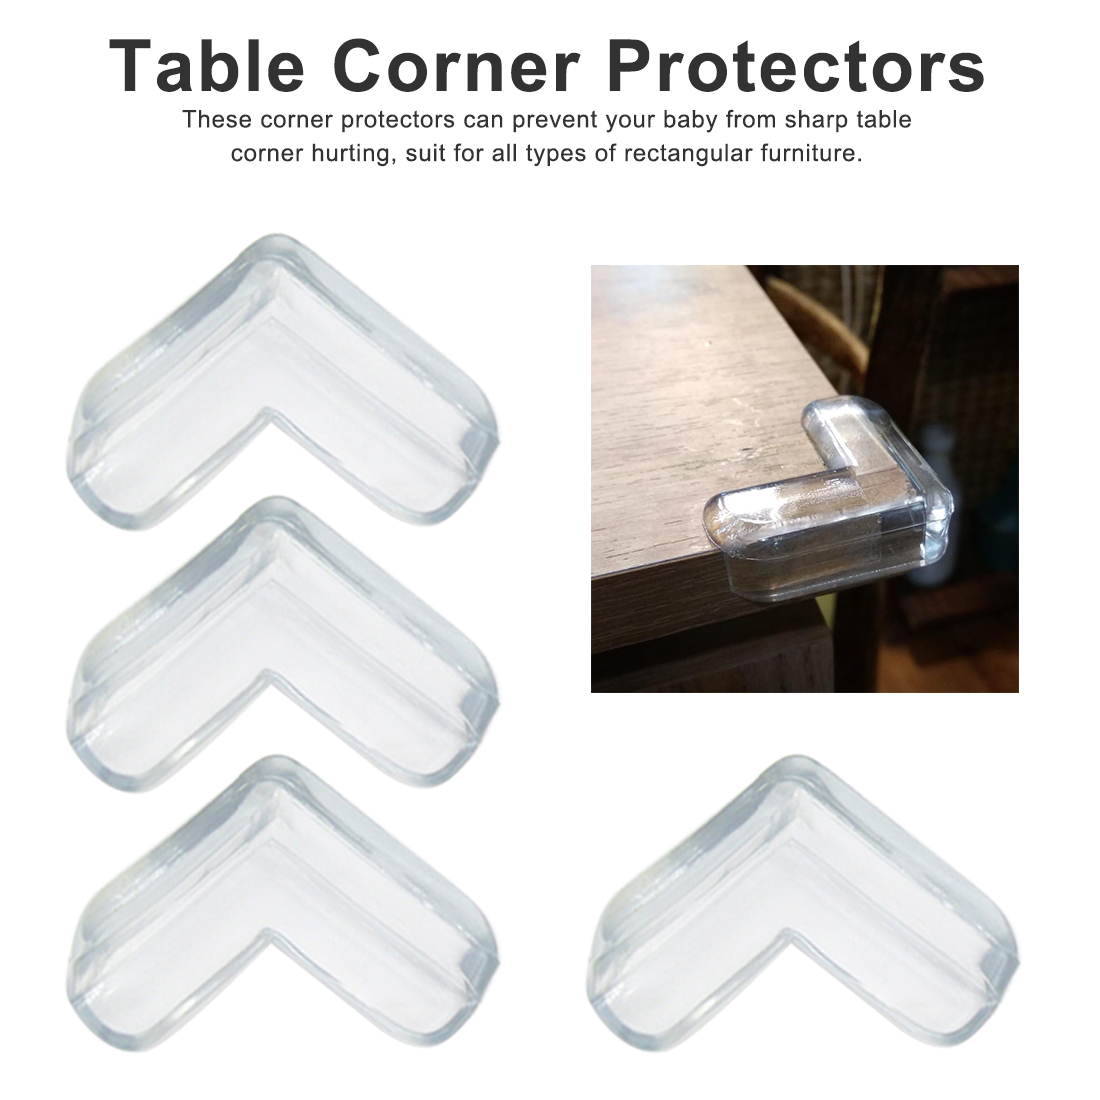 4Pcs Safety Protector Table Corner Edge Protection Cover Child Baby Children Anticollision Edge Child Corner Guards4Pcs Safety Protector Table Corner Edge Protection Cover Child Baby Children Anticollision Edge Child Corner Guards